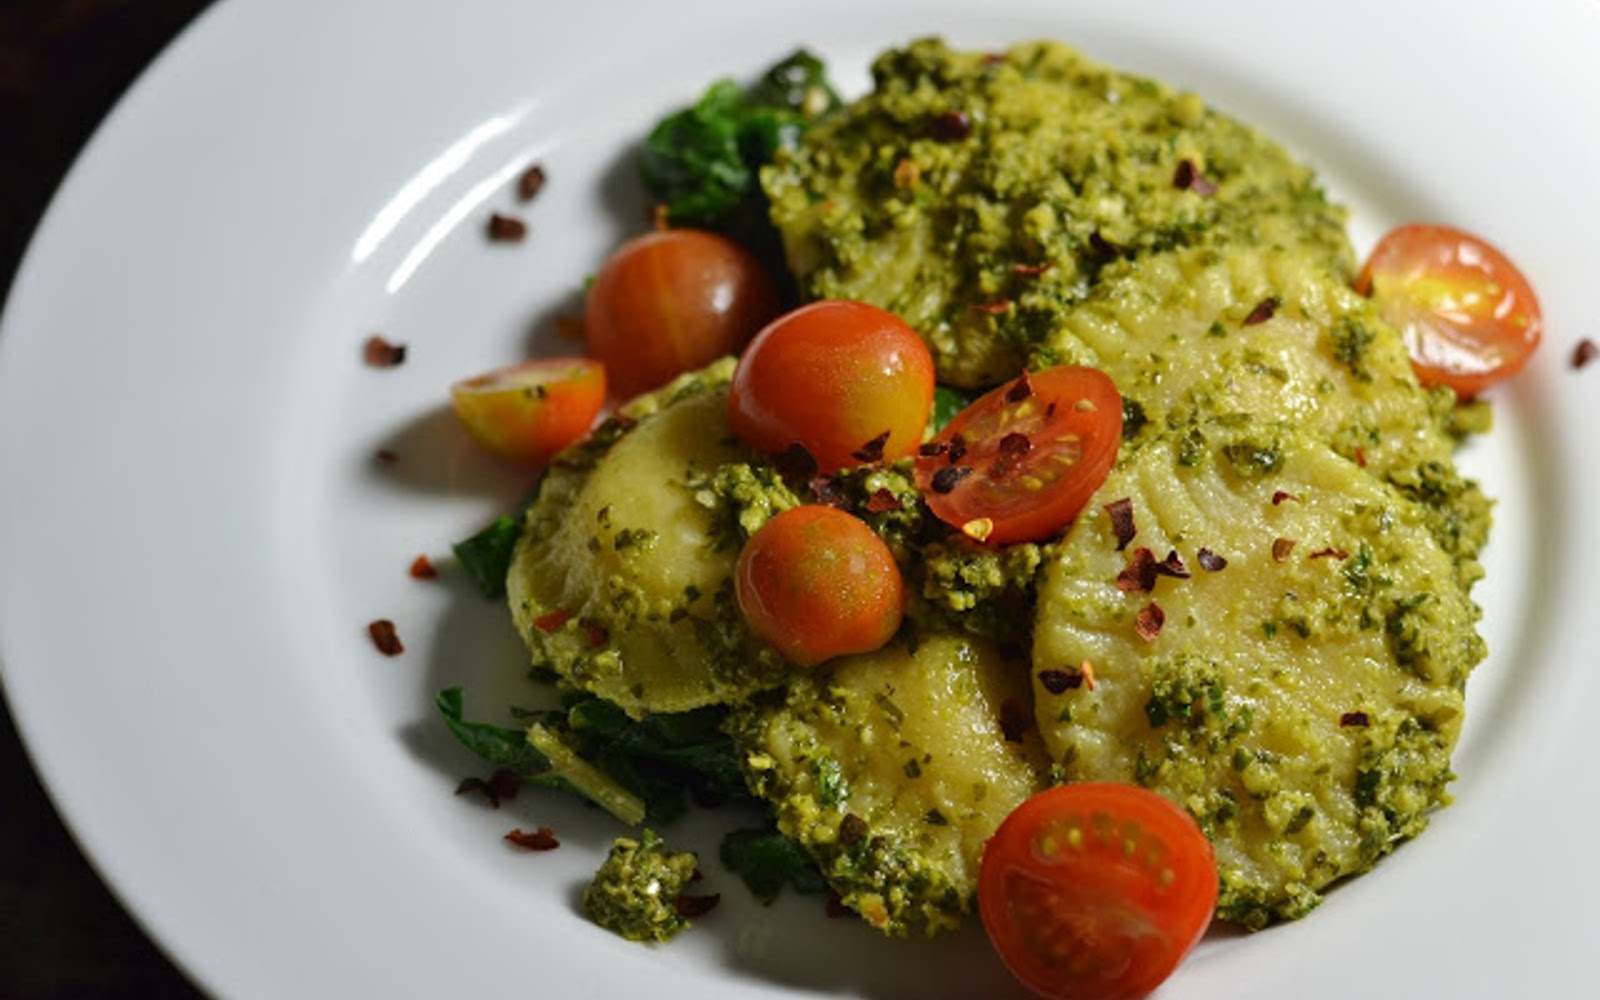 Vegan Ravioli With Kale Pesto And Sautéed Chard